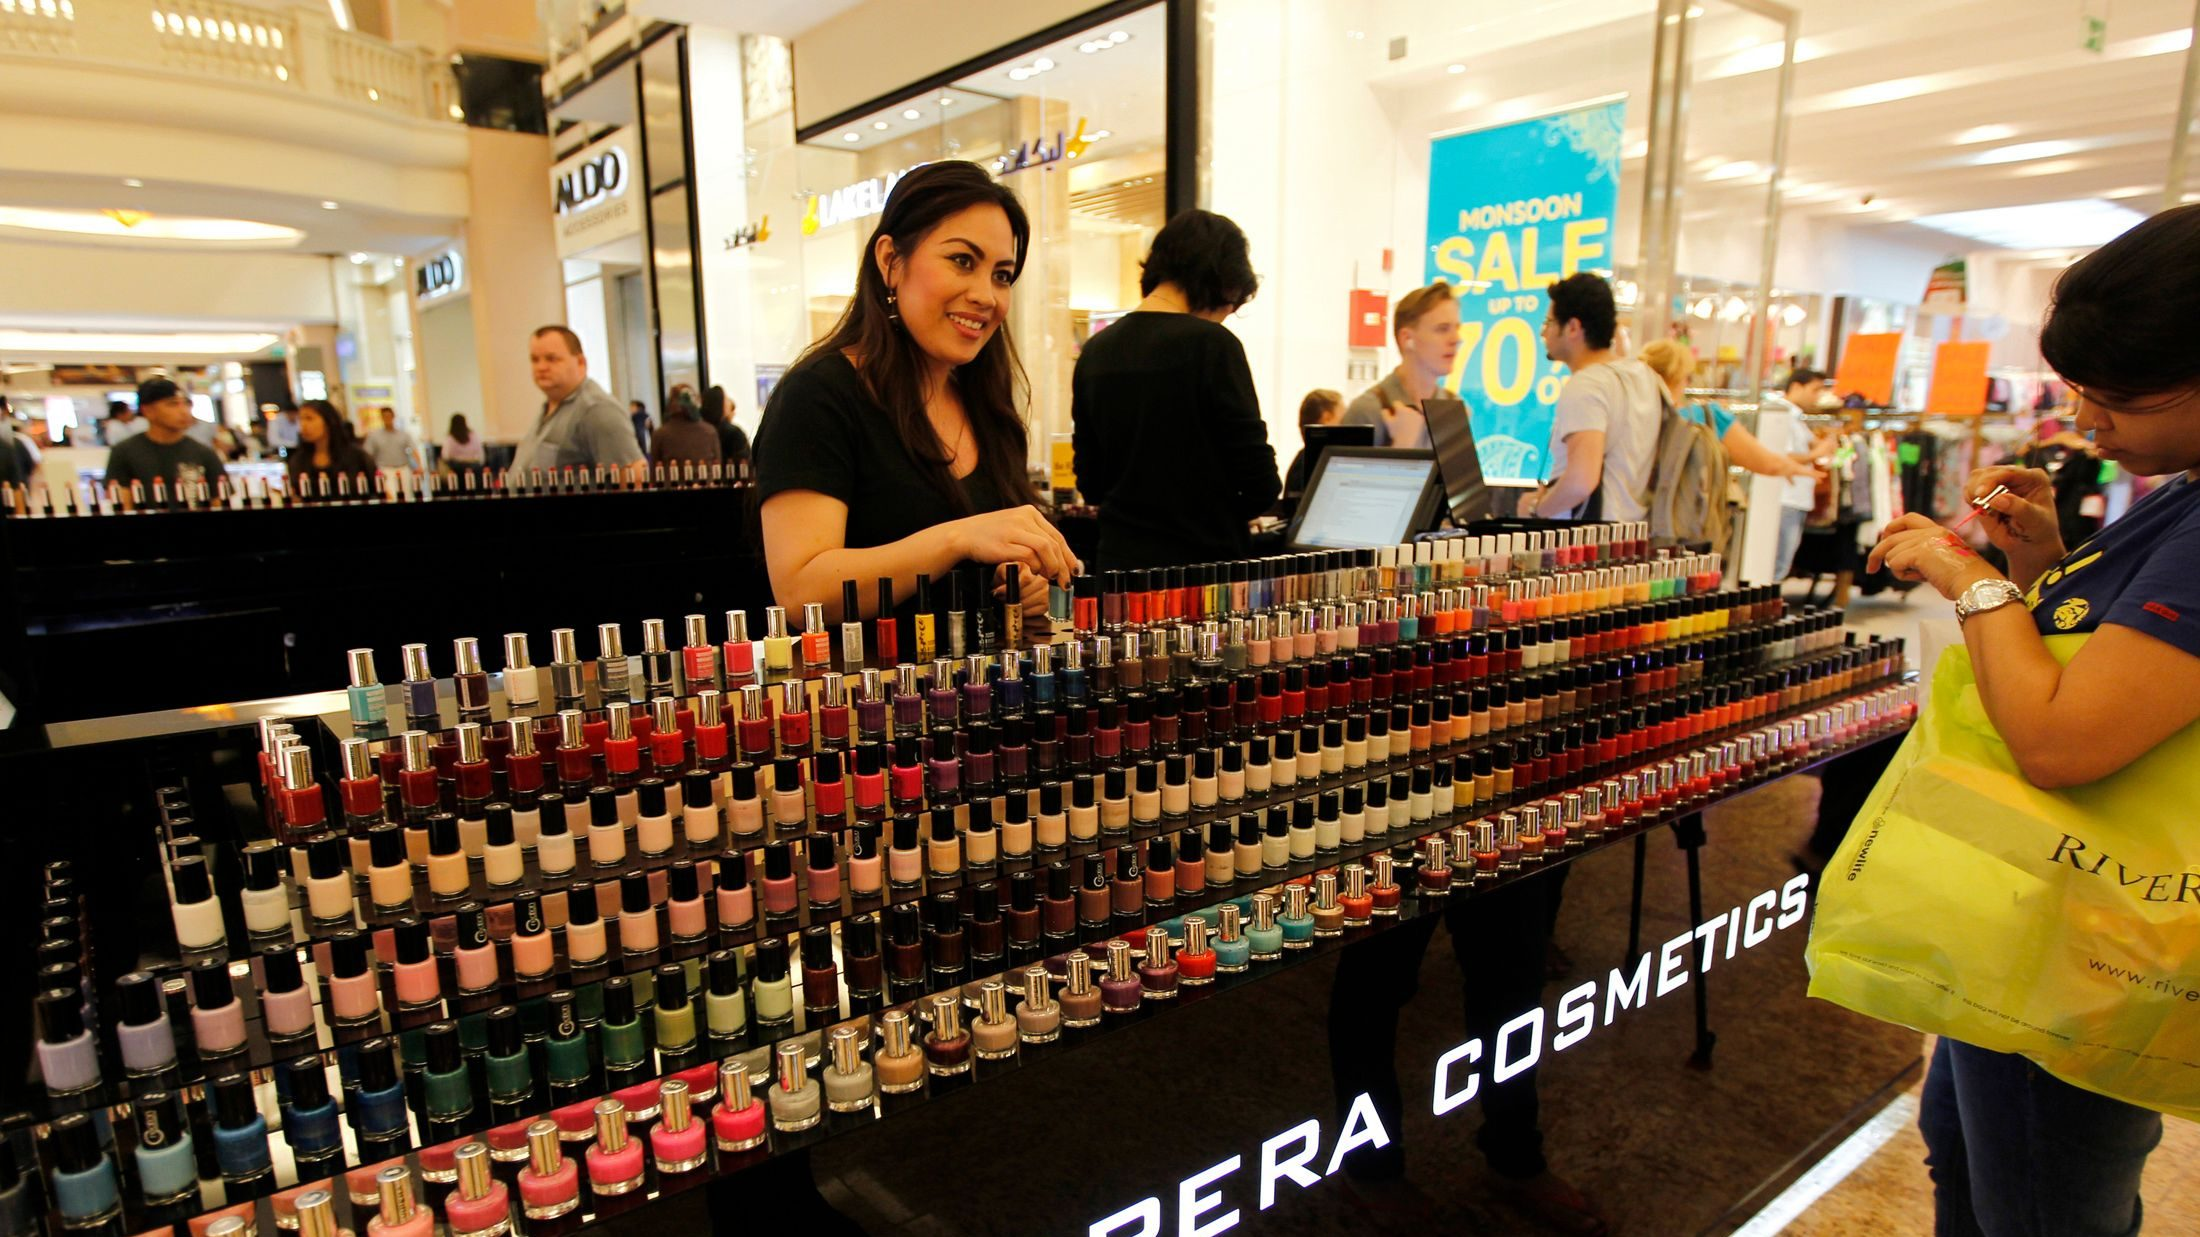 A shopper looks at bottles of nail polish displayed at a stall in the shopping centre Mall of the Emirates in Dubai, January 11, 2012. Gulf economies are continuing to grow strongly but amid a mammoth array of discounts, raffles and spending sprees at this year's Dubai Shopping Festival, there are signs consumers are becoming more value-conscious and think twice about lavishing cash after months of instability in the global economy. Picture taken January 11, 2012. To match Feature DUBAI-SHOPPING/       REUTERS/Jumana El Heloueh (UNITED ARAB EMIRATES - Tags: BUSINESS SOCIETY) - GM1E81I1SY601